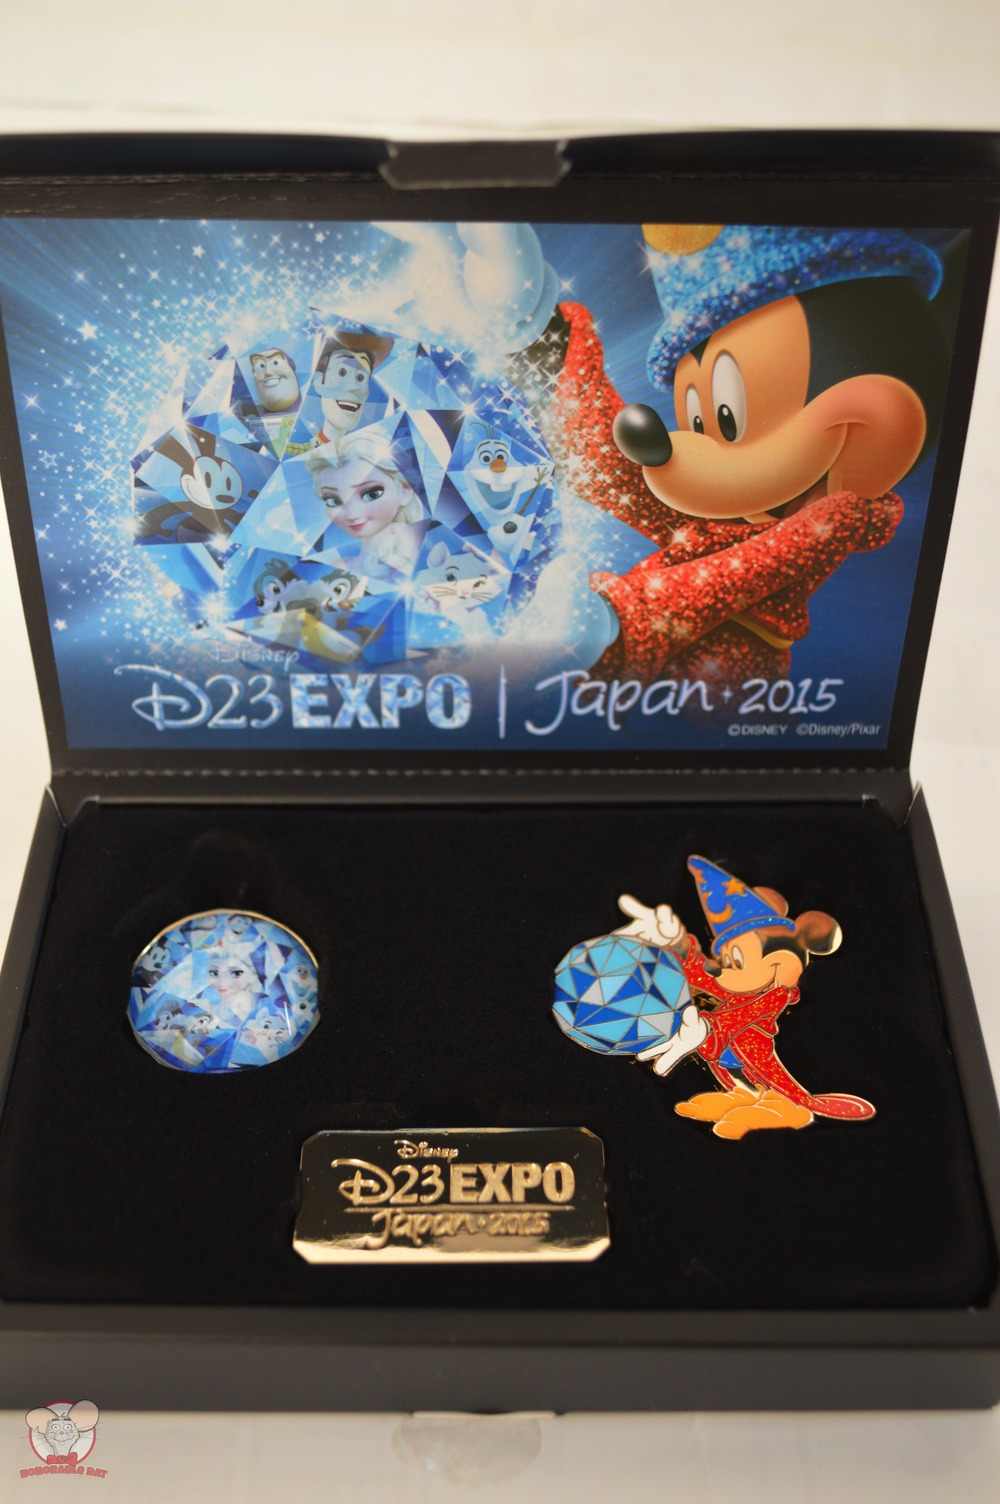 D23 Expo Japan 2015 Collectors Pin Set